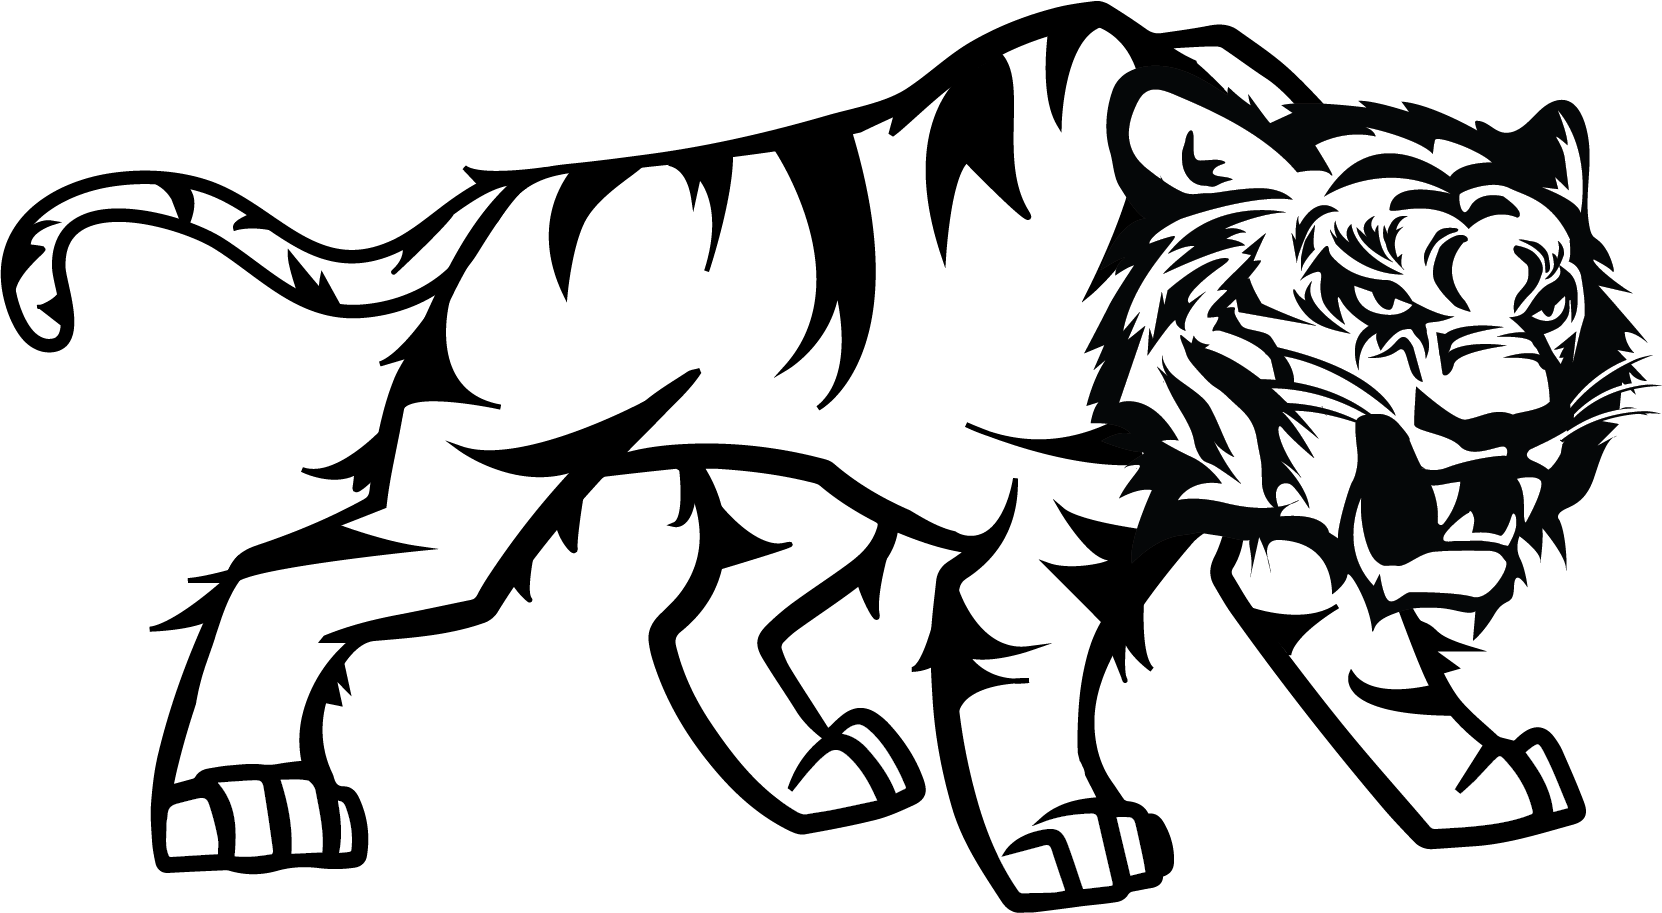 Tiger cat black and white clipart clip art free stock Tiger Cat Black and white Logo Lion - tiger 1662*913 transprent Png ... clip art free stock